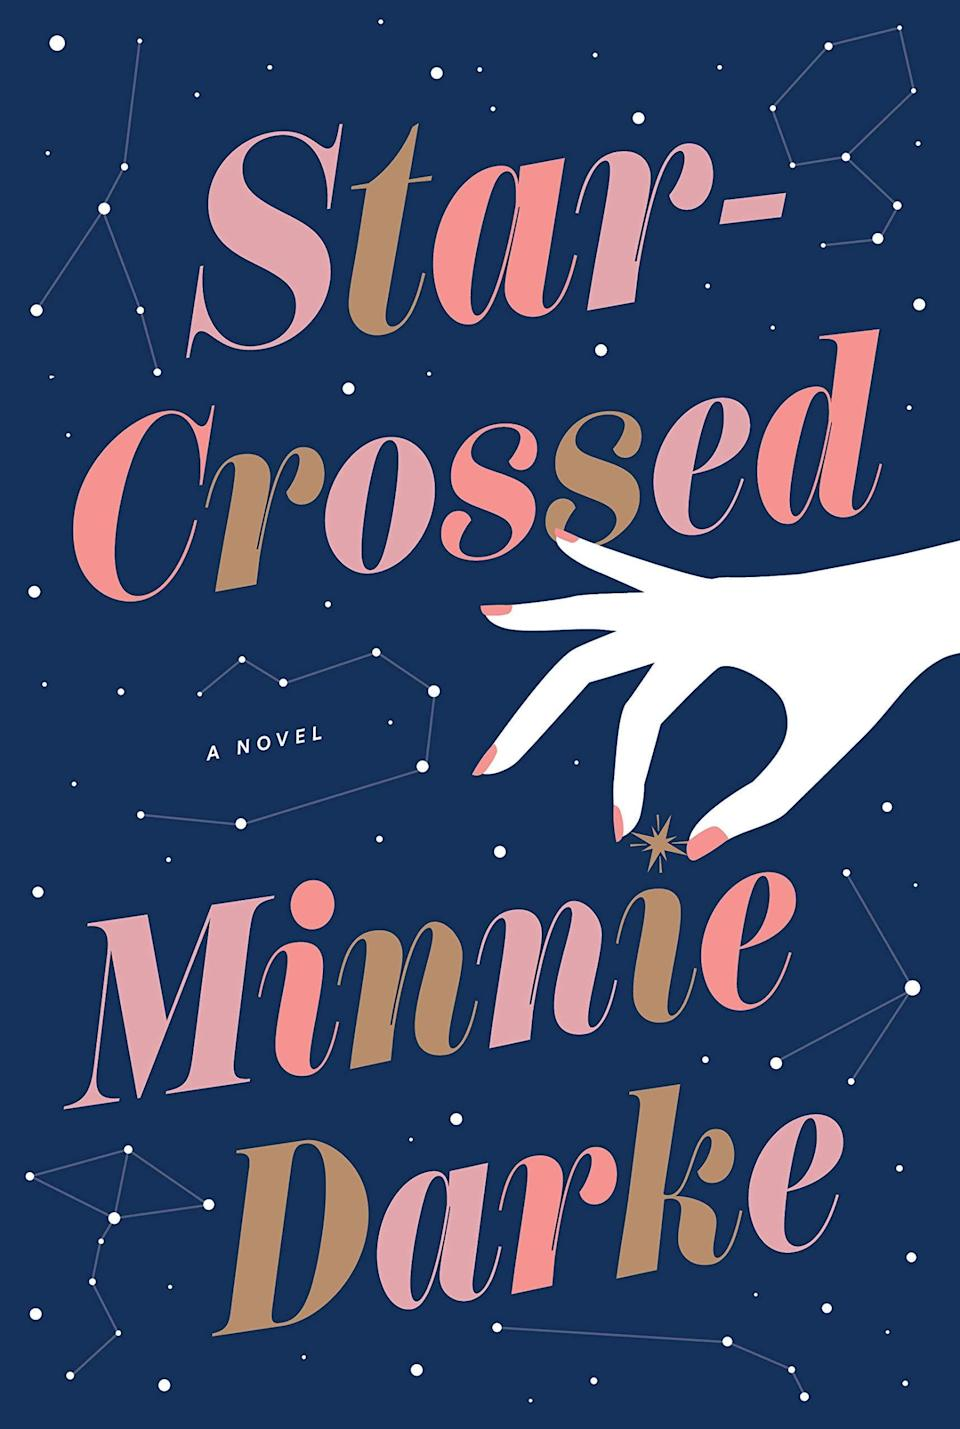 <p>Astrology lovers will enjoy <span><strong>Star-Crossed</strong> by Minnie Darke</span> ($26), a story about childhood best friends Justine Carmichael and Nick Jordan who lose touch and meet again as adults. Justine is interested in Nick and learns that he is a devoted reader of the horoscopes printed in the monthly magazine that she writes for, so she decides to give him a subtle nudge by meddling with his horoscope. Little does she know, her actions will change the course for him and other Aquarians across the community.</p> <p>A clever and creative premise combined with masterful storytelling makes this one of the most unique books I've read. It's smart, unexpected, and charming! Astrology plays an intense role in the story, so I'd recommend it for those who really get a kick out of reading horoscopes.</p>